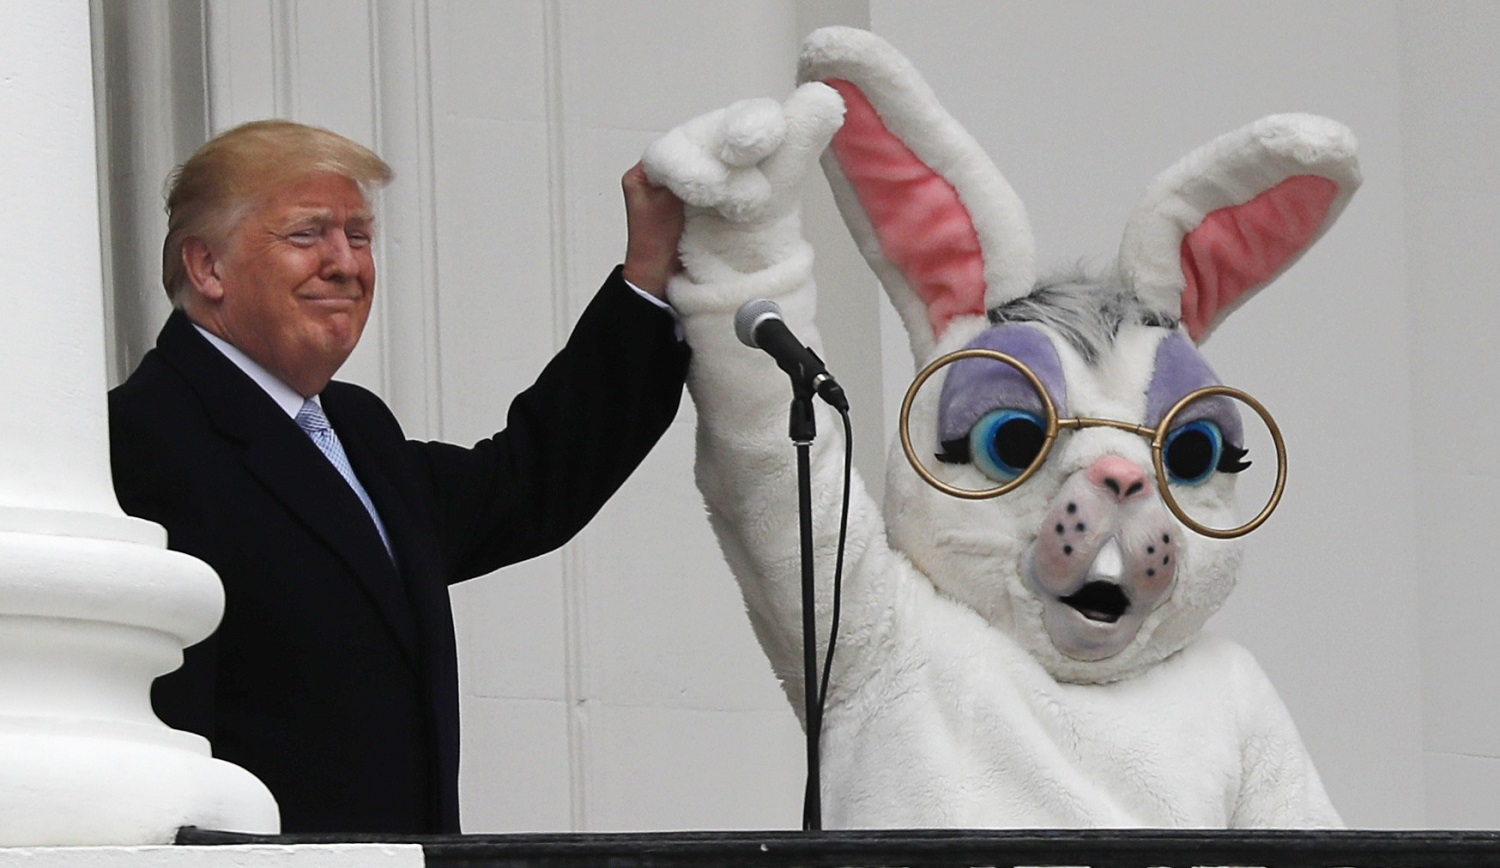 U.S. President Donald Trump raises the arm of the Easter Bunny as they appear together on the South Portico of the White House during the annual White House Easter Egg Roll on the South Lawn of the White House in Washington, U.S., April 2, 2018. REUTERS/Carlos Barria